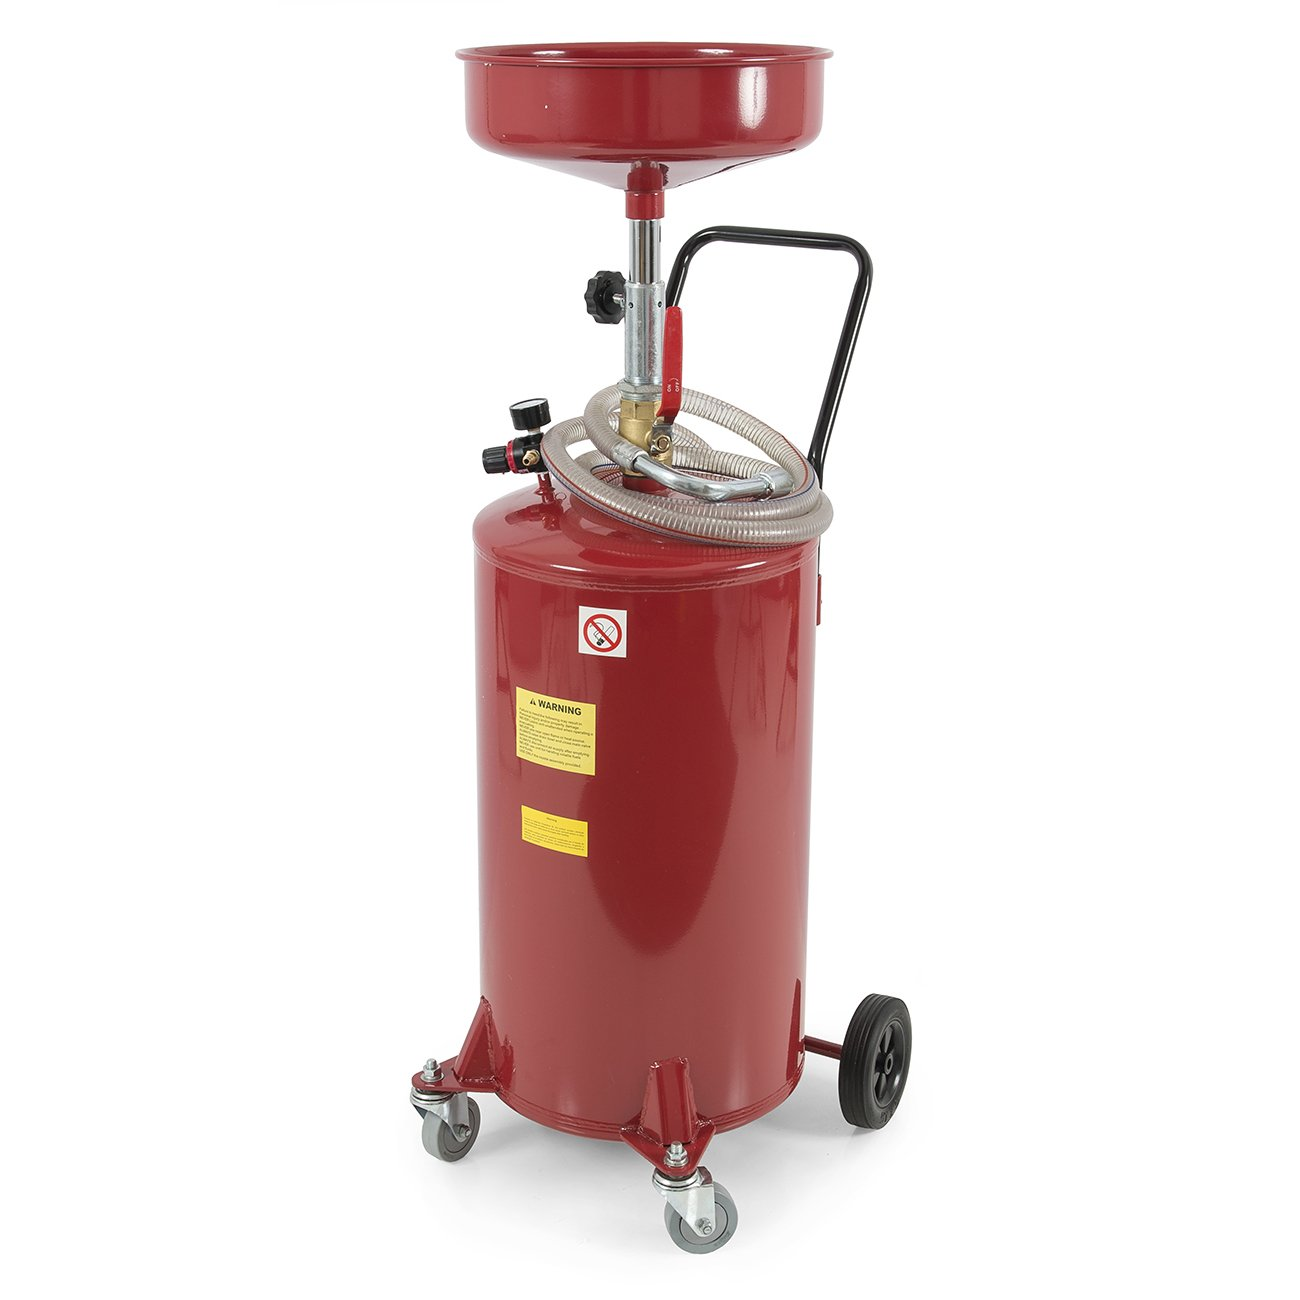 ARKSEN 20 Gallon Portable Waste Oil Drain Tank Air Operated Drainage Adjustable Funnel Height w/Wheel, Red by ARKSEN